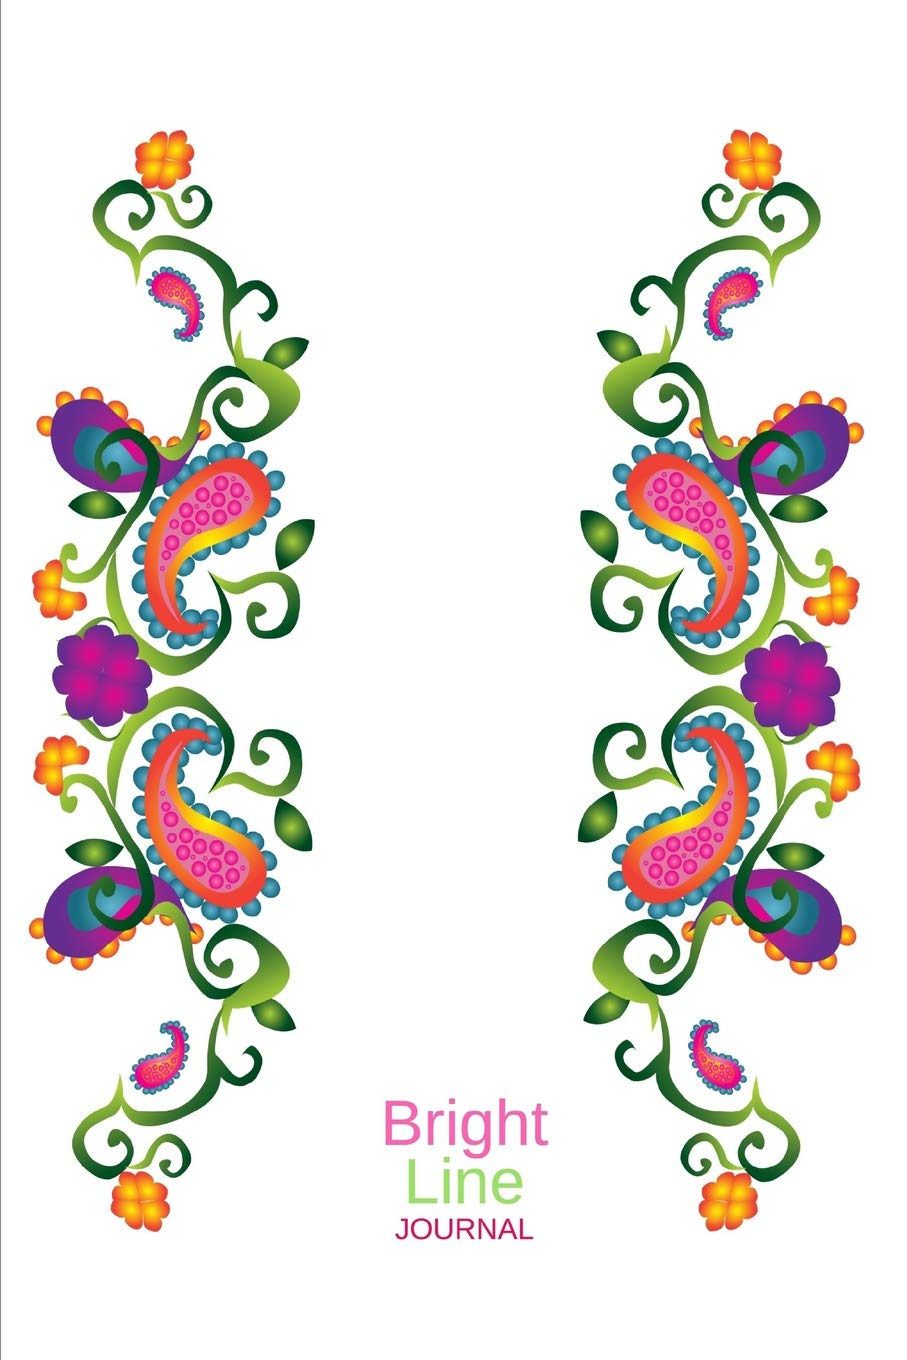 Bright Line Journal: A daily food planner to organize and track your meals, BLE weight loss program, 180 days, 91 pages – Soft cover 4